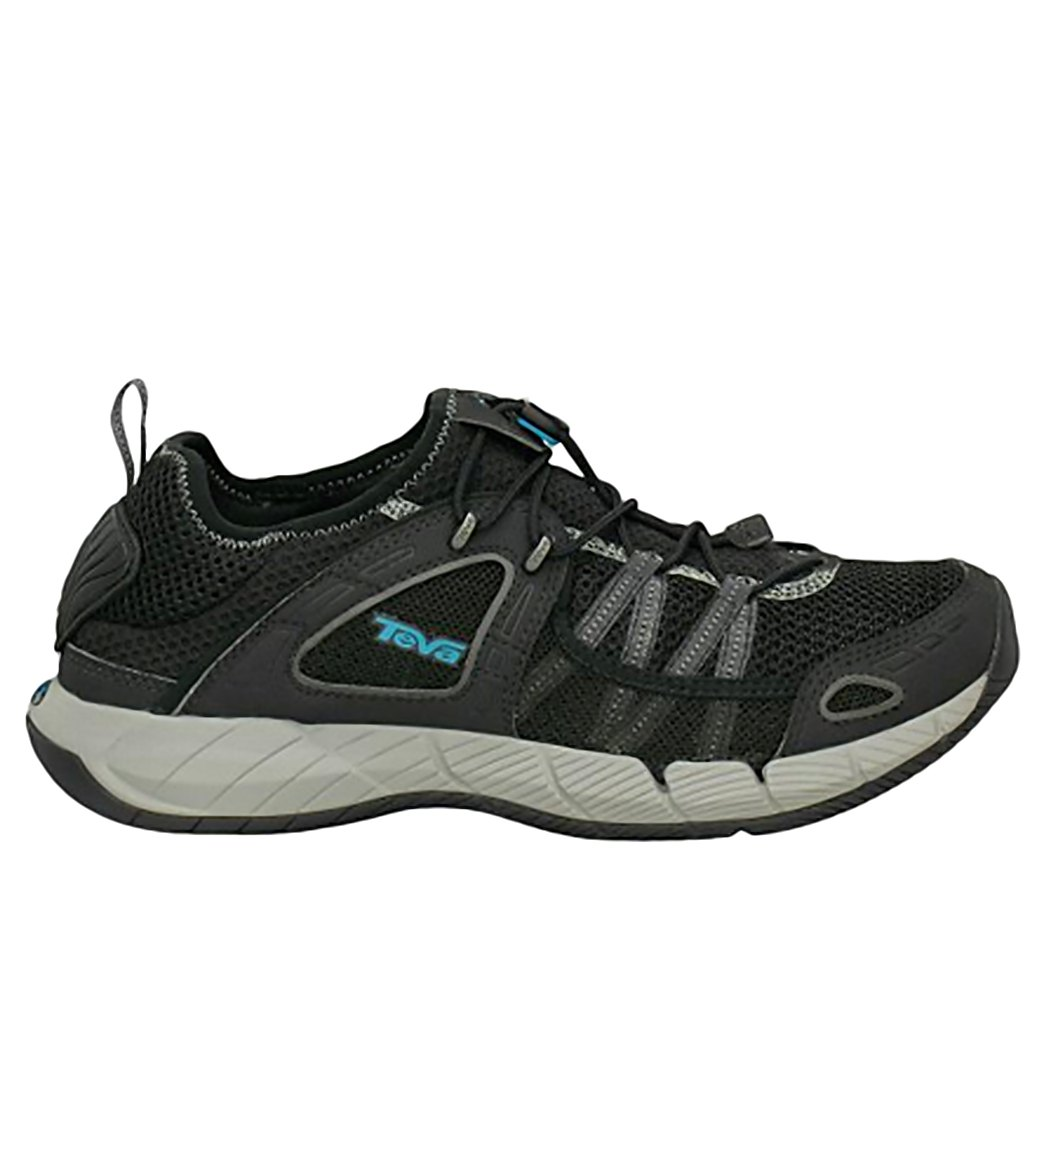 Teva Men's Churn Water Shoes at SwimOutlet.com - Free Shipping